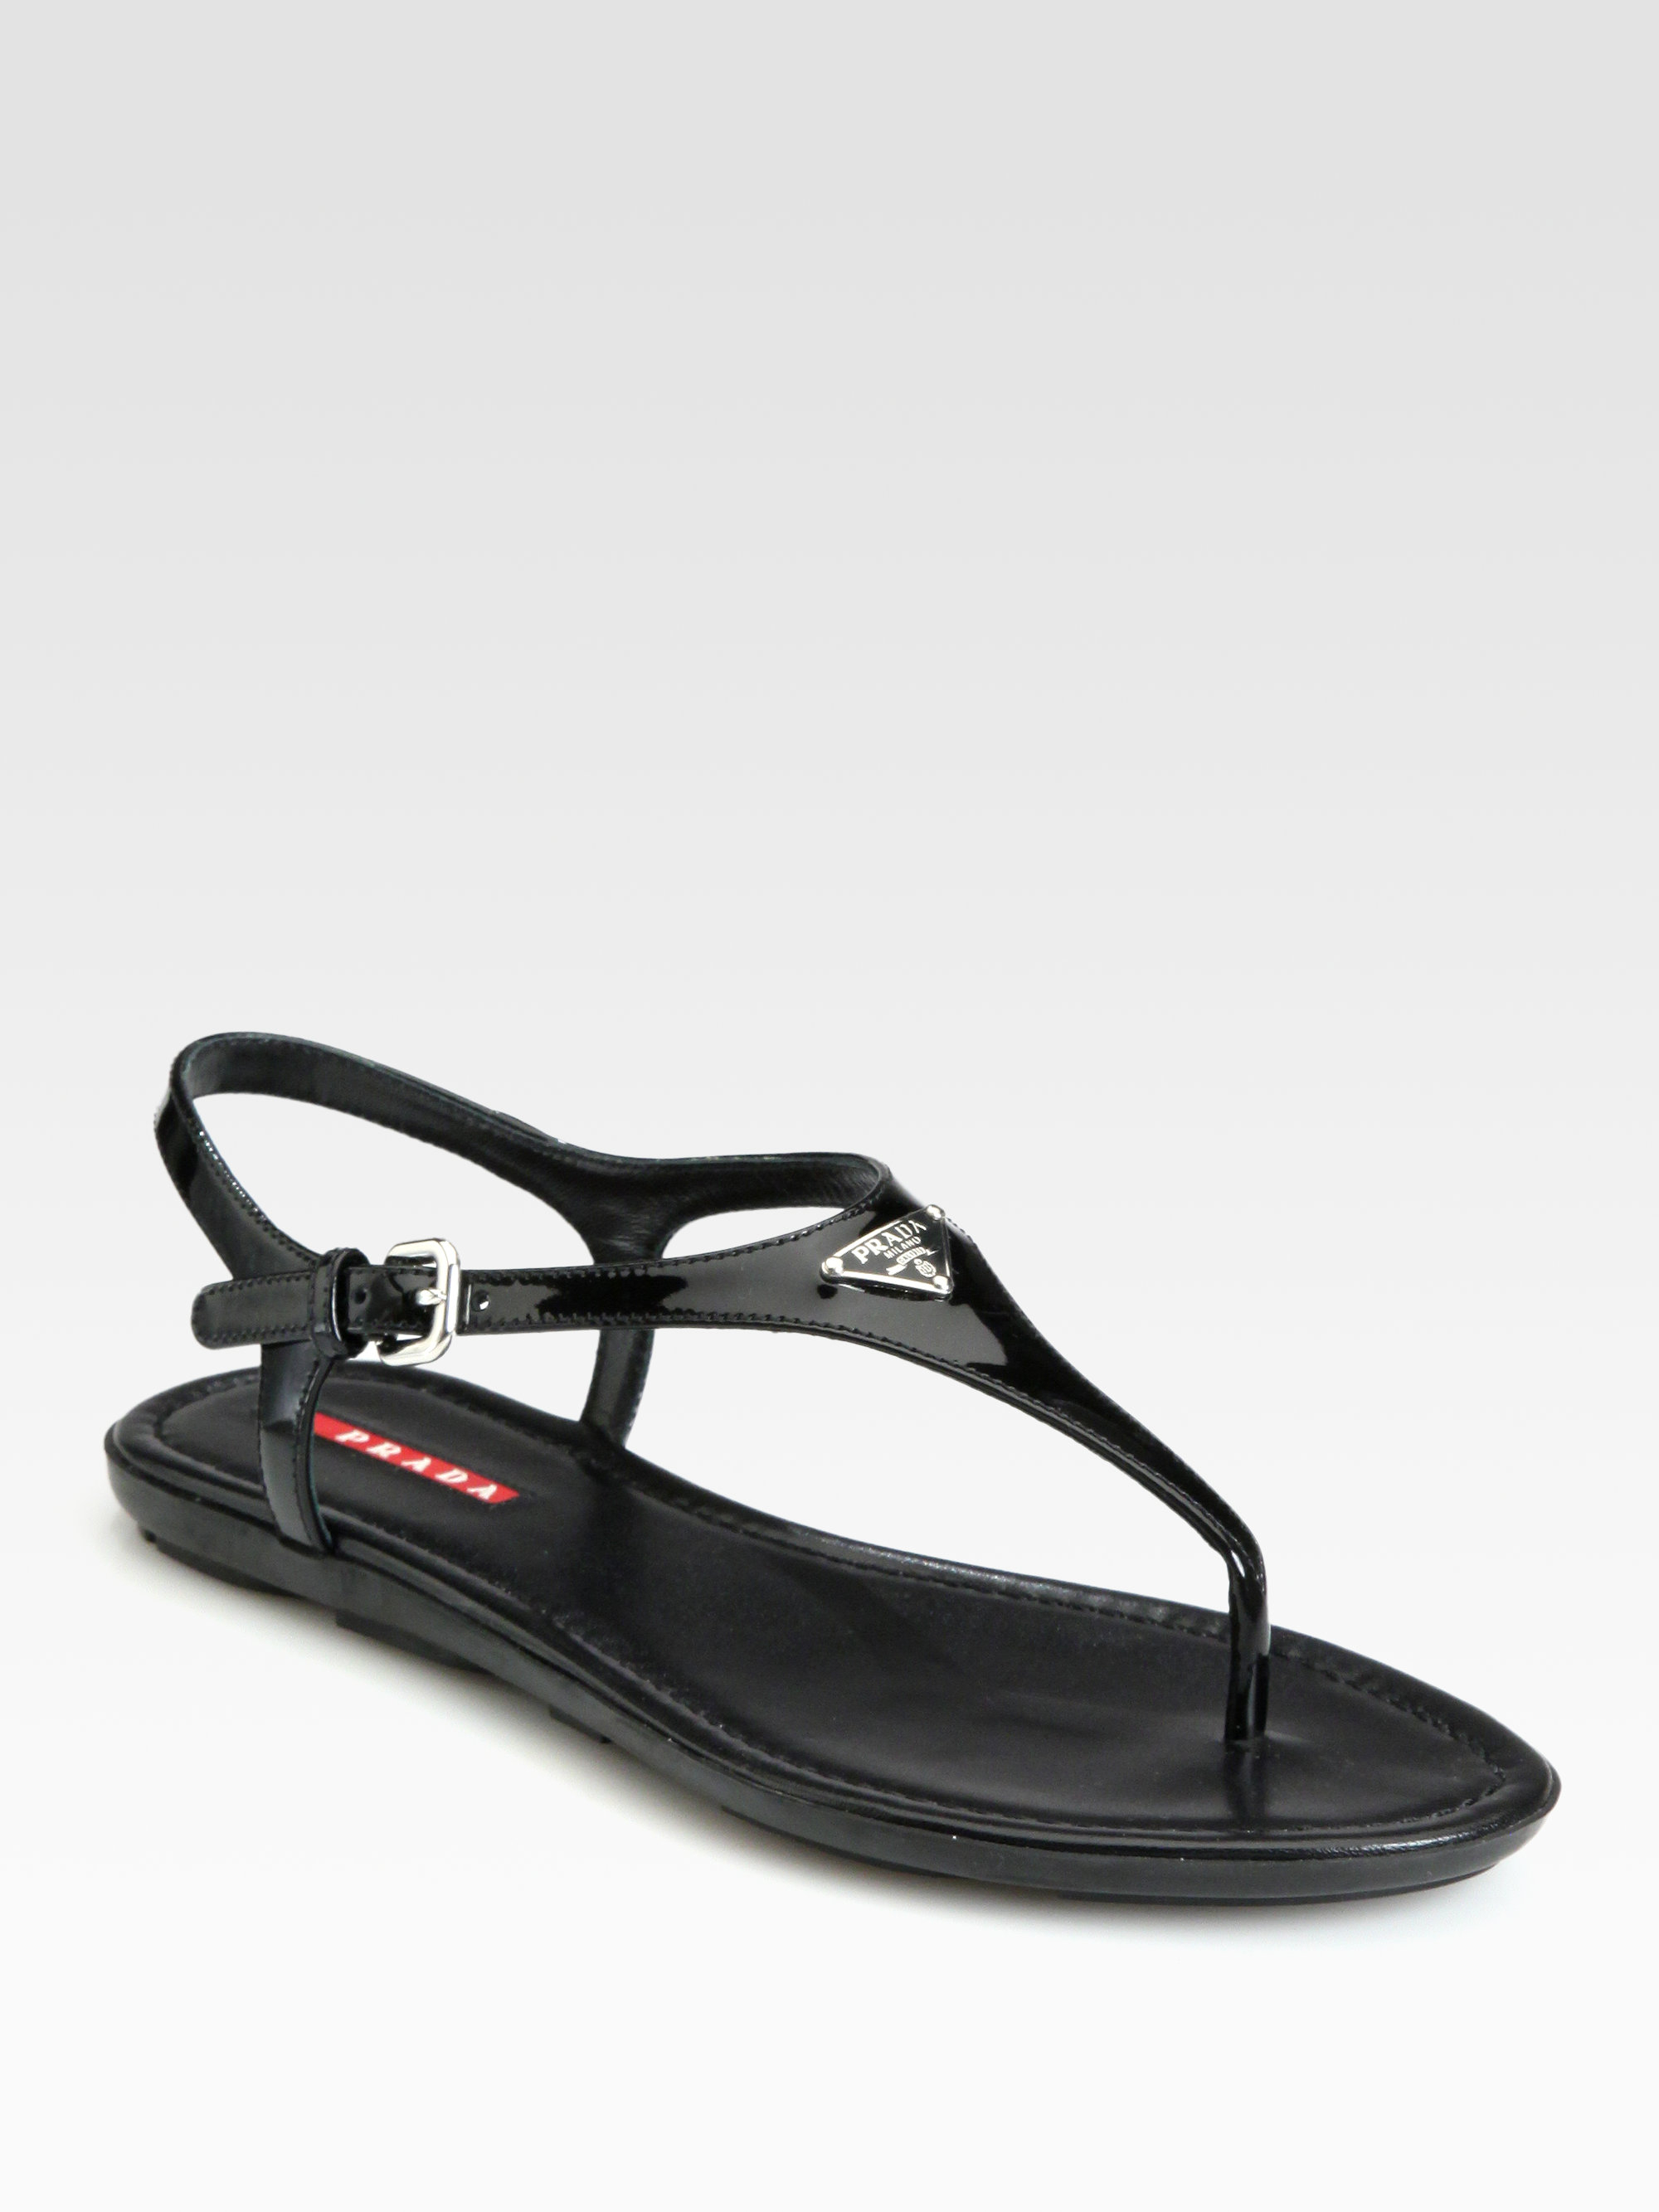 94d651ce8a83 Prada Patent Leather Thong Sandals in Black - Lyst